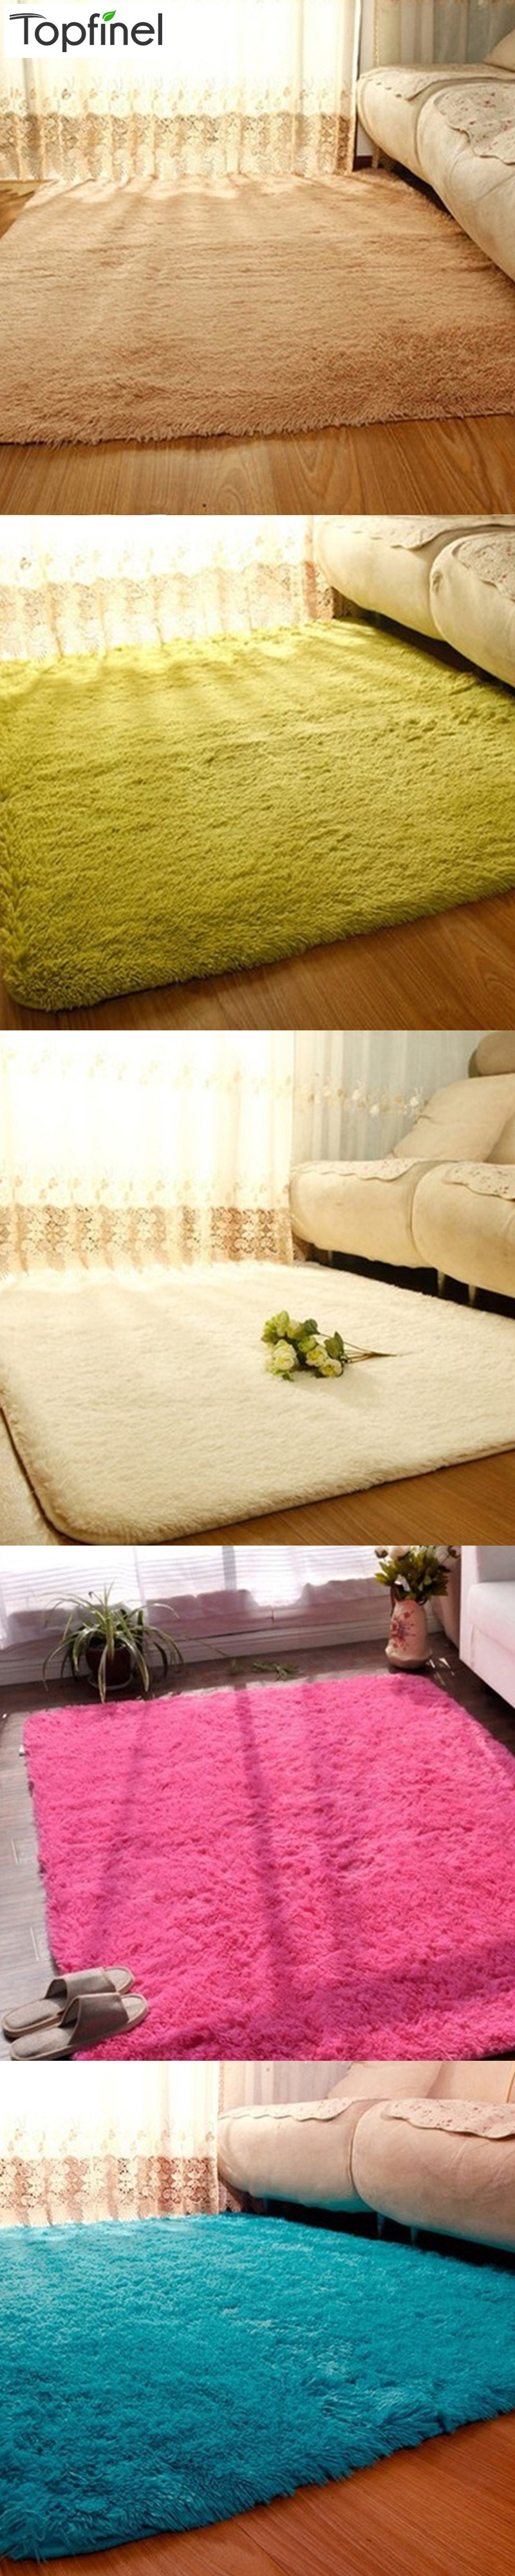 Floor mats sale - 2016 Hot Sale High Quality Floor Mats Modern Shaggy Area Rugs And Carpets For Living Room Bedroom Shaggy Carpet Rug For Home